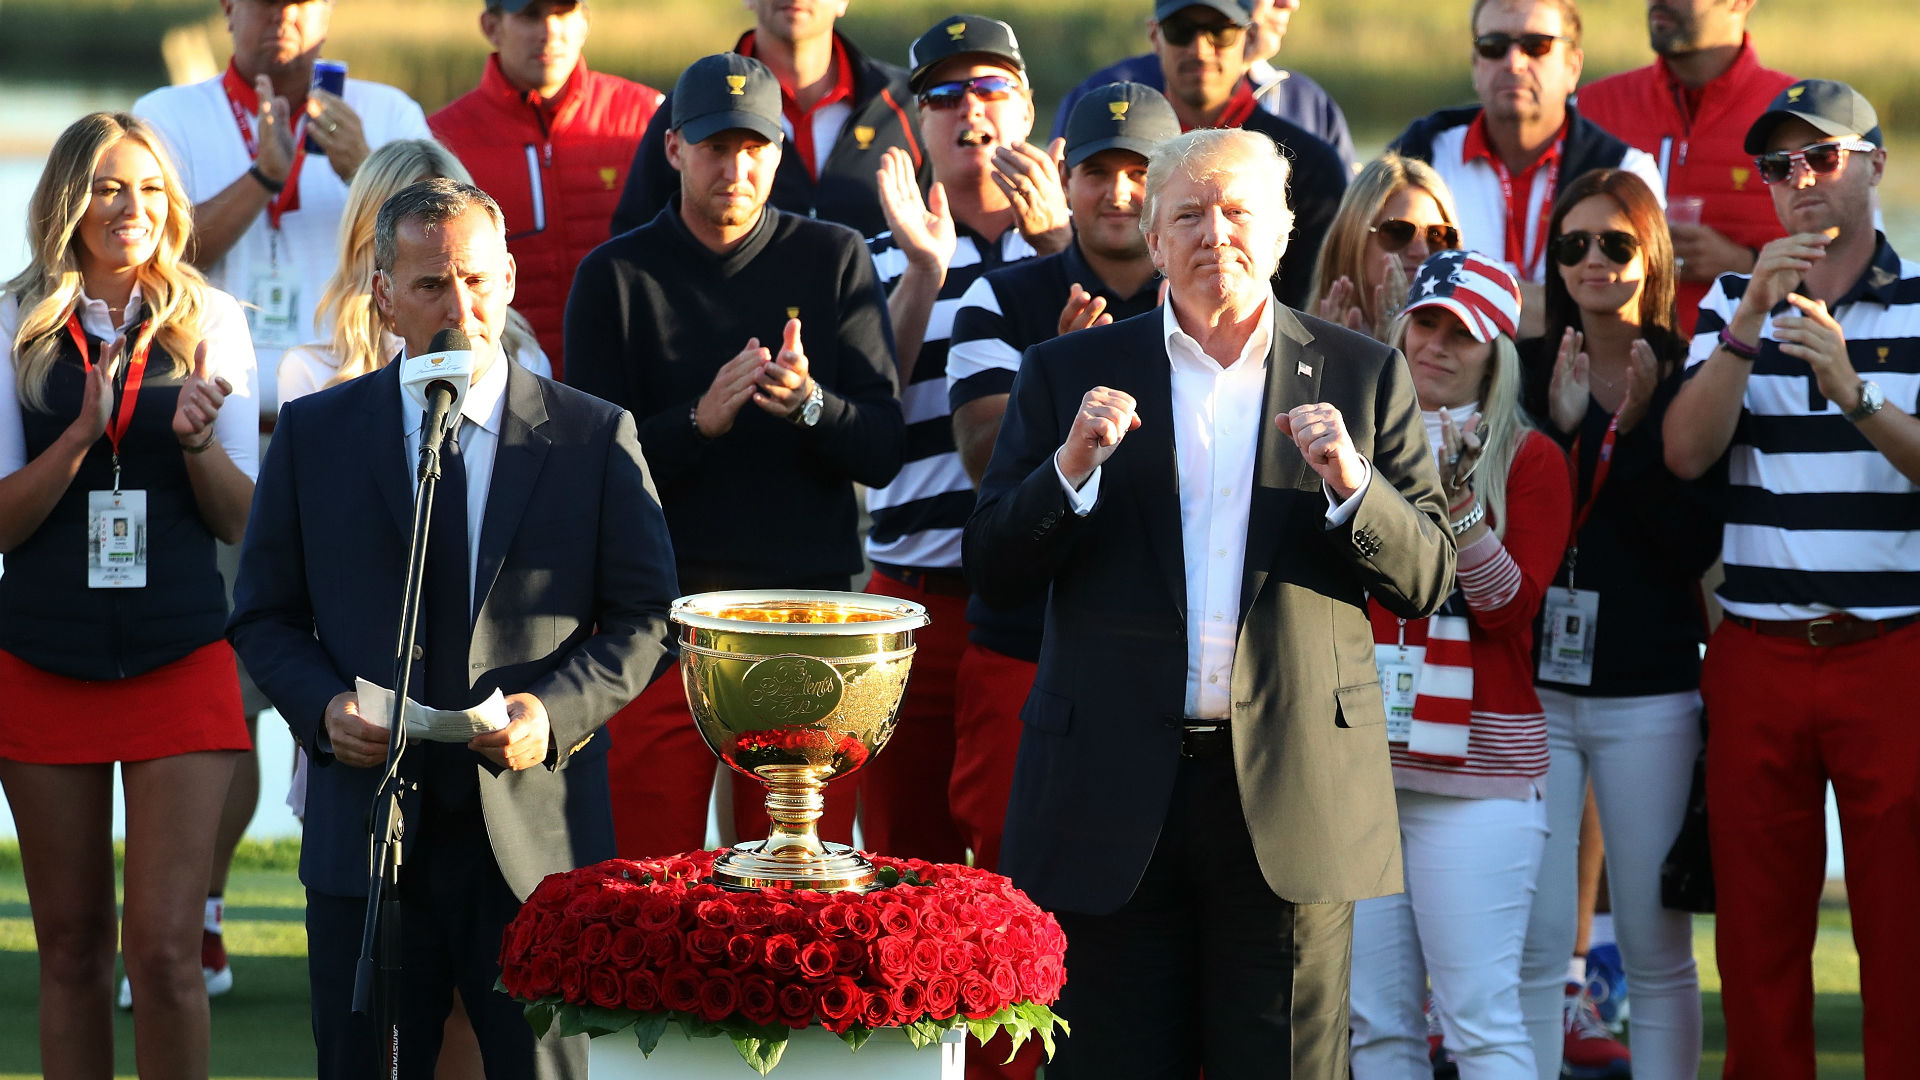 Presidents Cup 2017: President Trump presents trophy to U.S. team at Liberty National